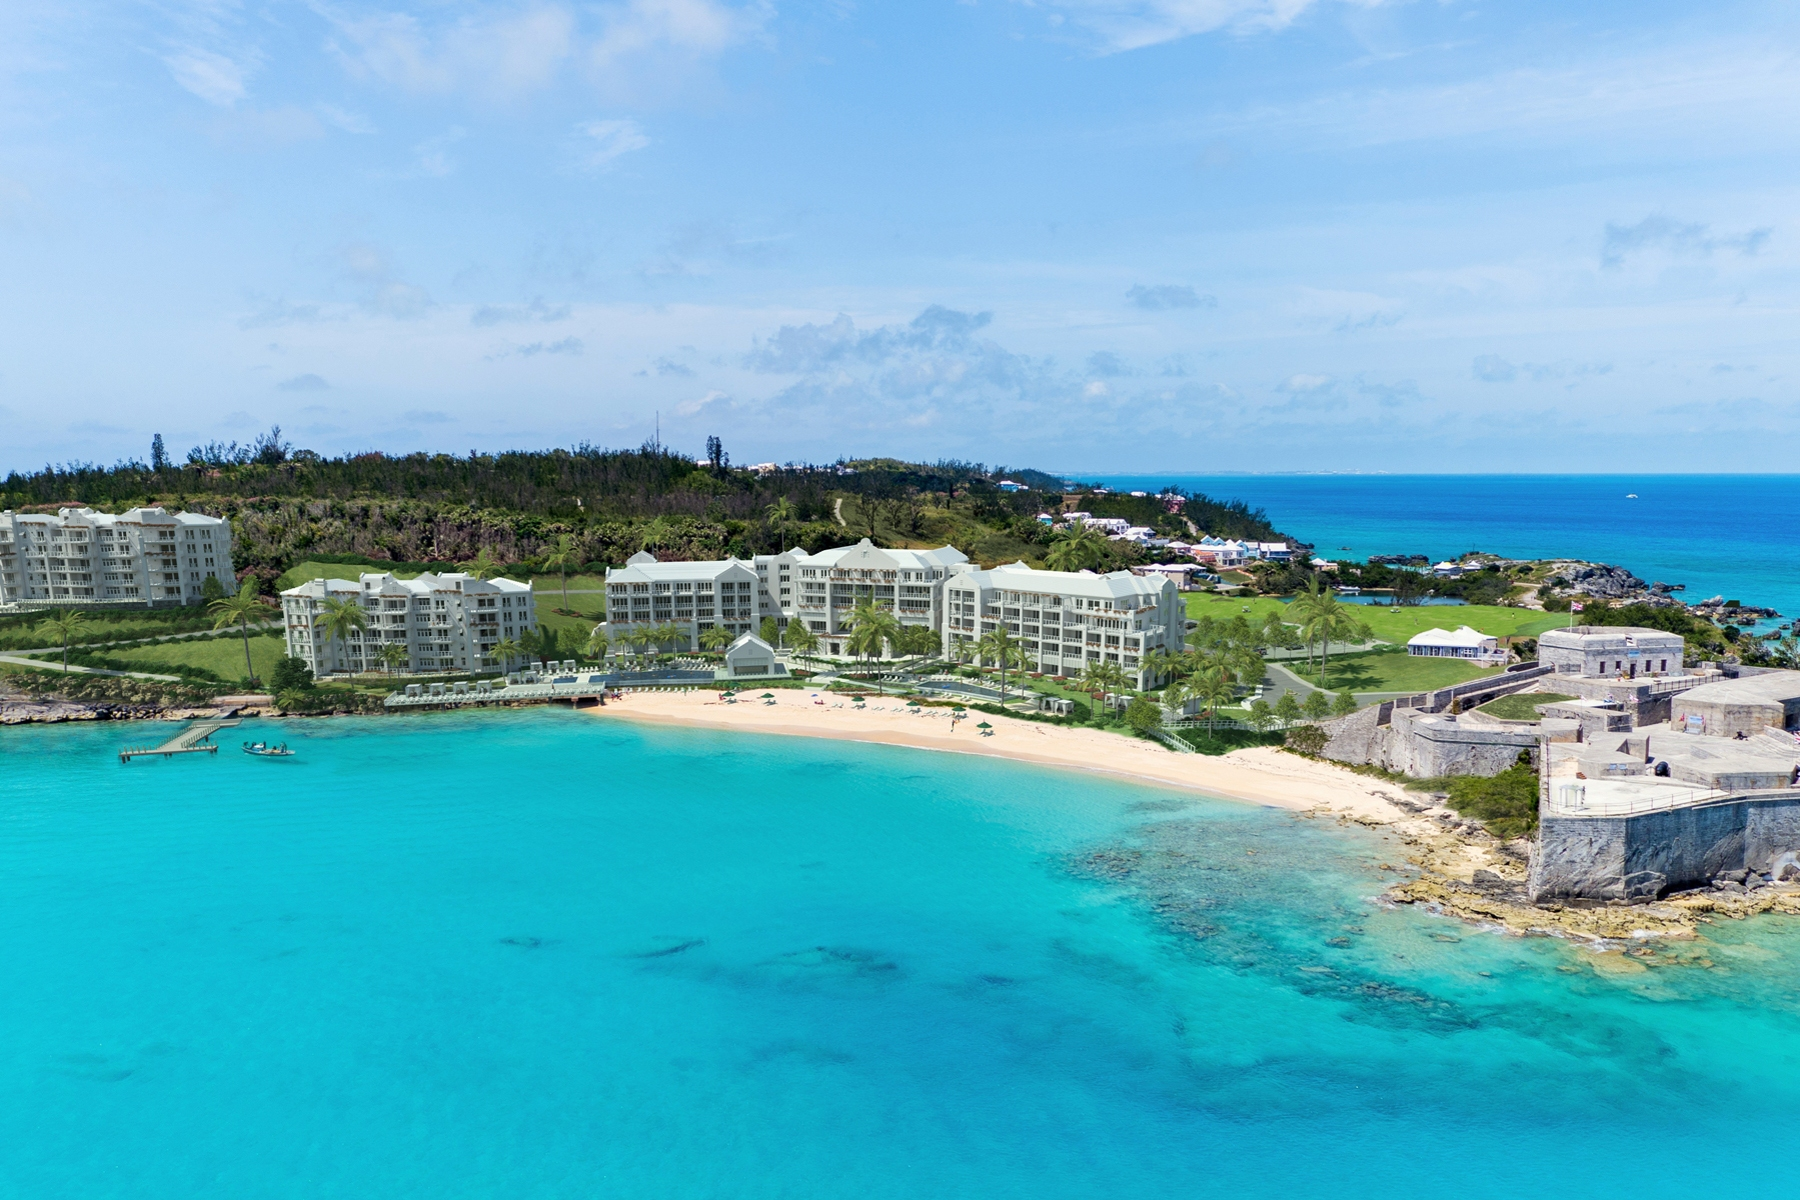 Condominiums for Sale at The Residences at St. Regis Bermuda Unit PHA & PHC St. Catherine's Beach Other Bermuda, Other Areas In Bermuda SG03 Bermuda